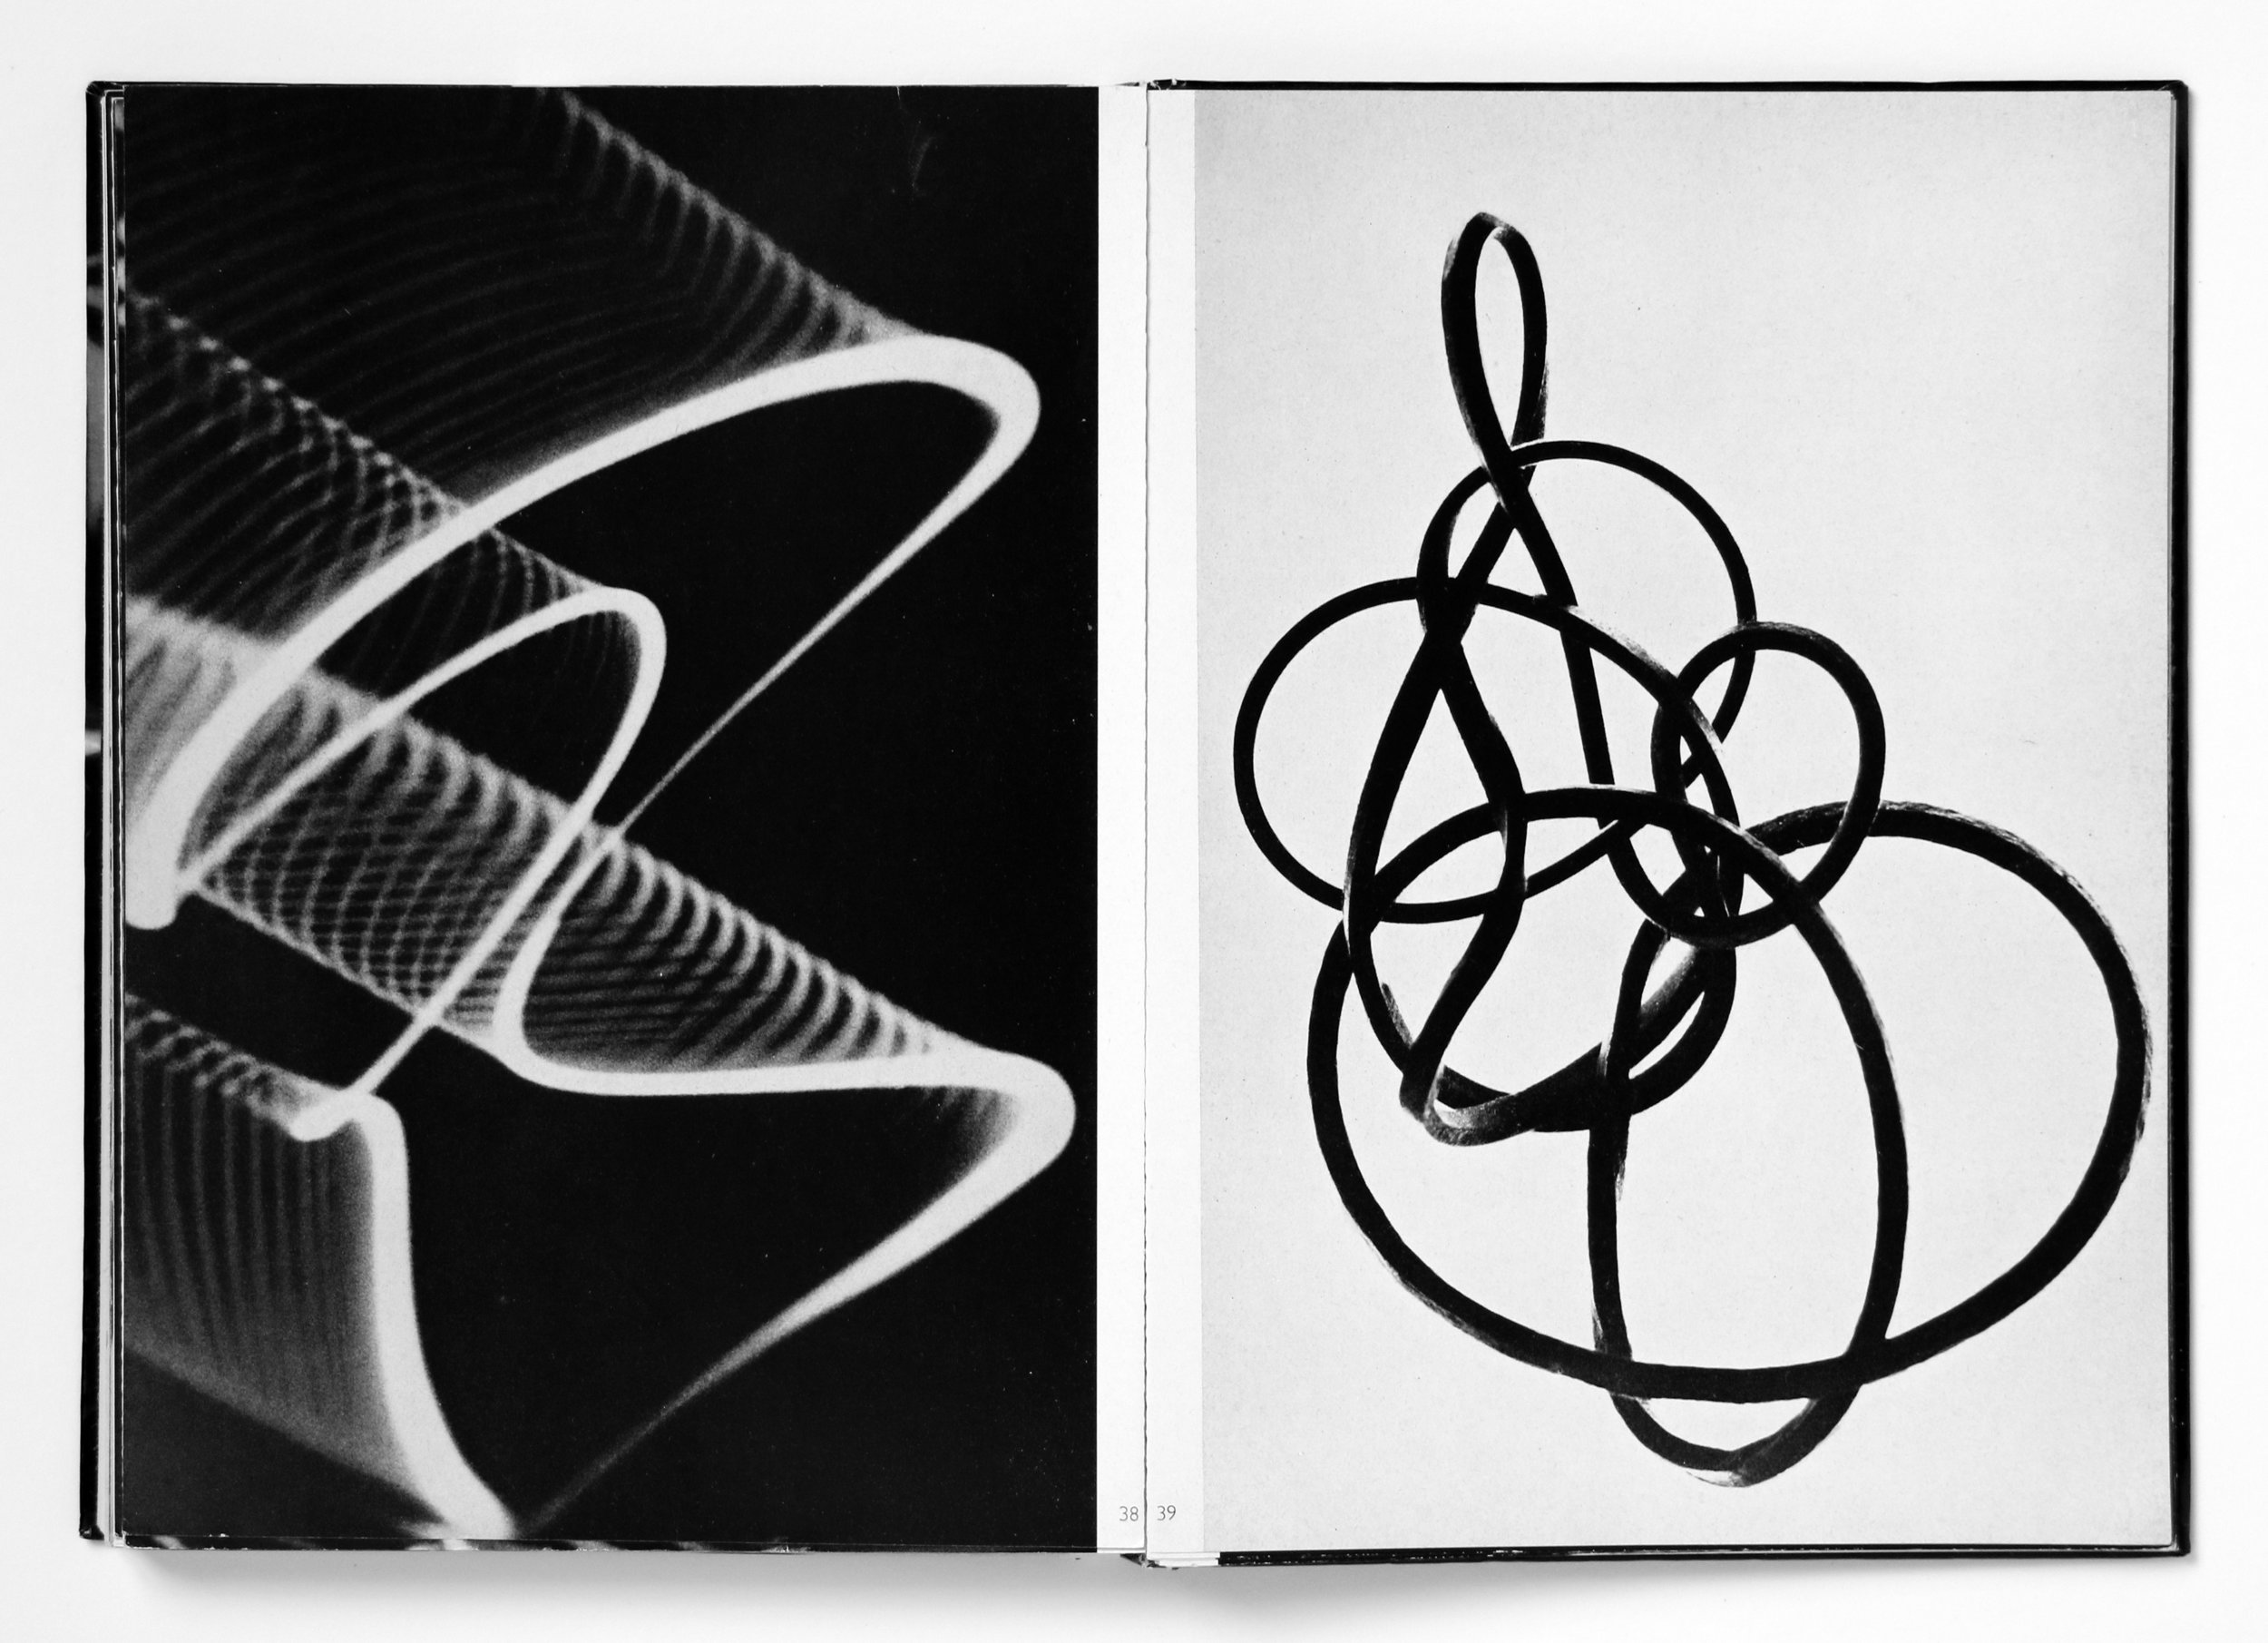 Double page 38/39 from  Kunst und Konstruktion : (l.): Herbert W. Franke and Andres Hübner,  Pendulum Oscillogram , Contaflex, photographed from a screen; (r.): idem,  Verdrillter Gummiring , camera photograph; both photographs not dated (c. 1957)